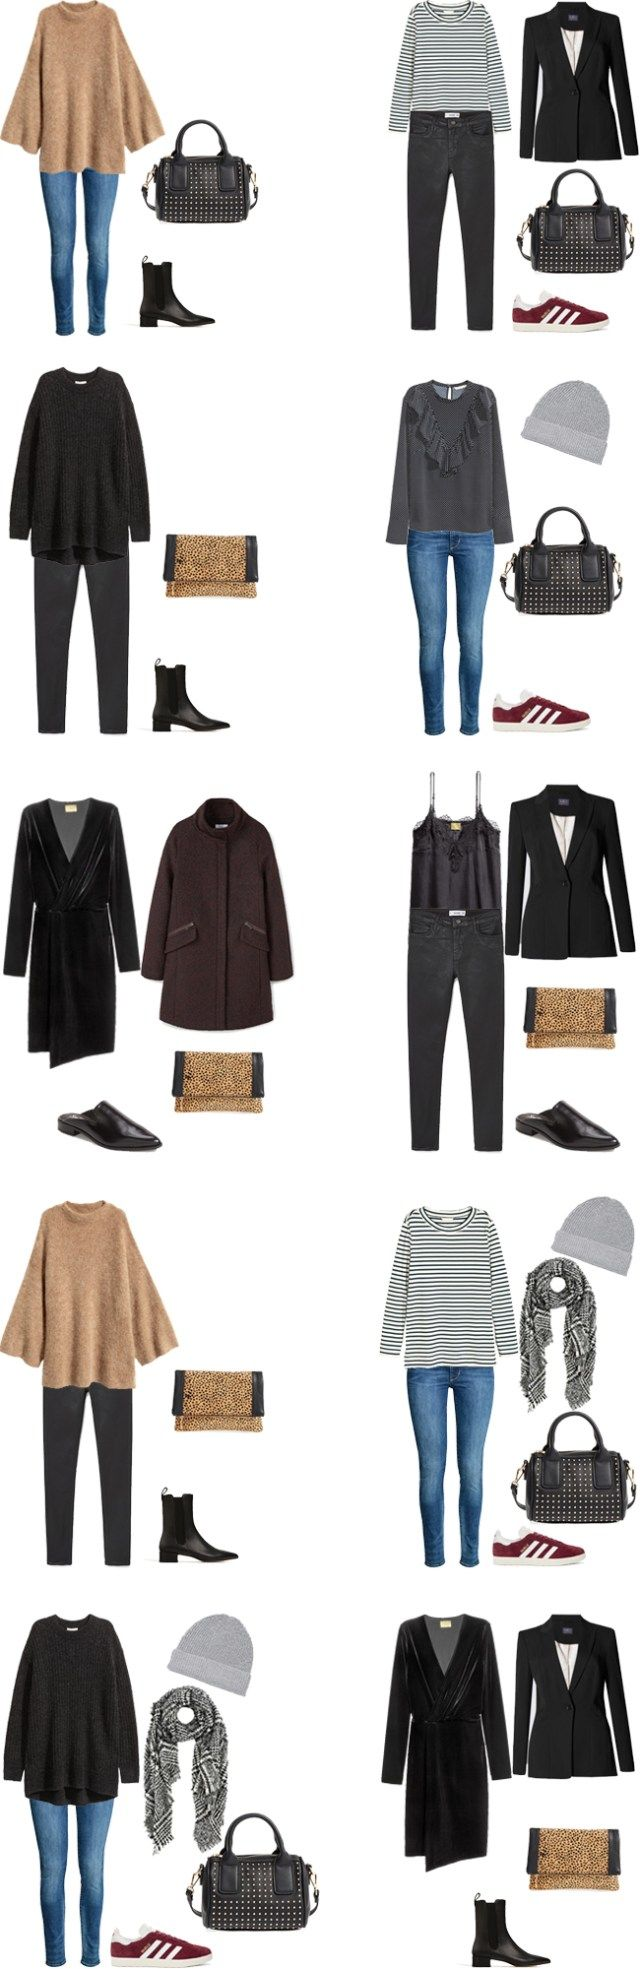 livelovesara - My life in a blog by Sara Watson. Packing List: 4 days in New York City in December- Outfit Options. 2016